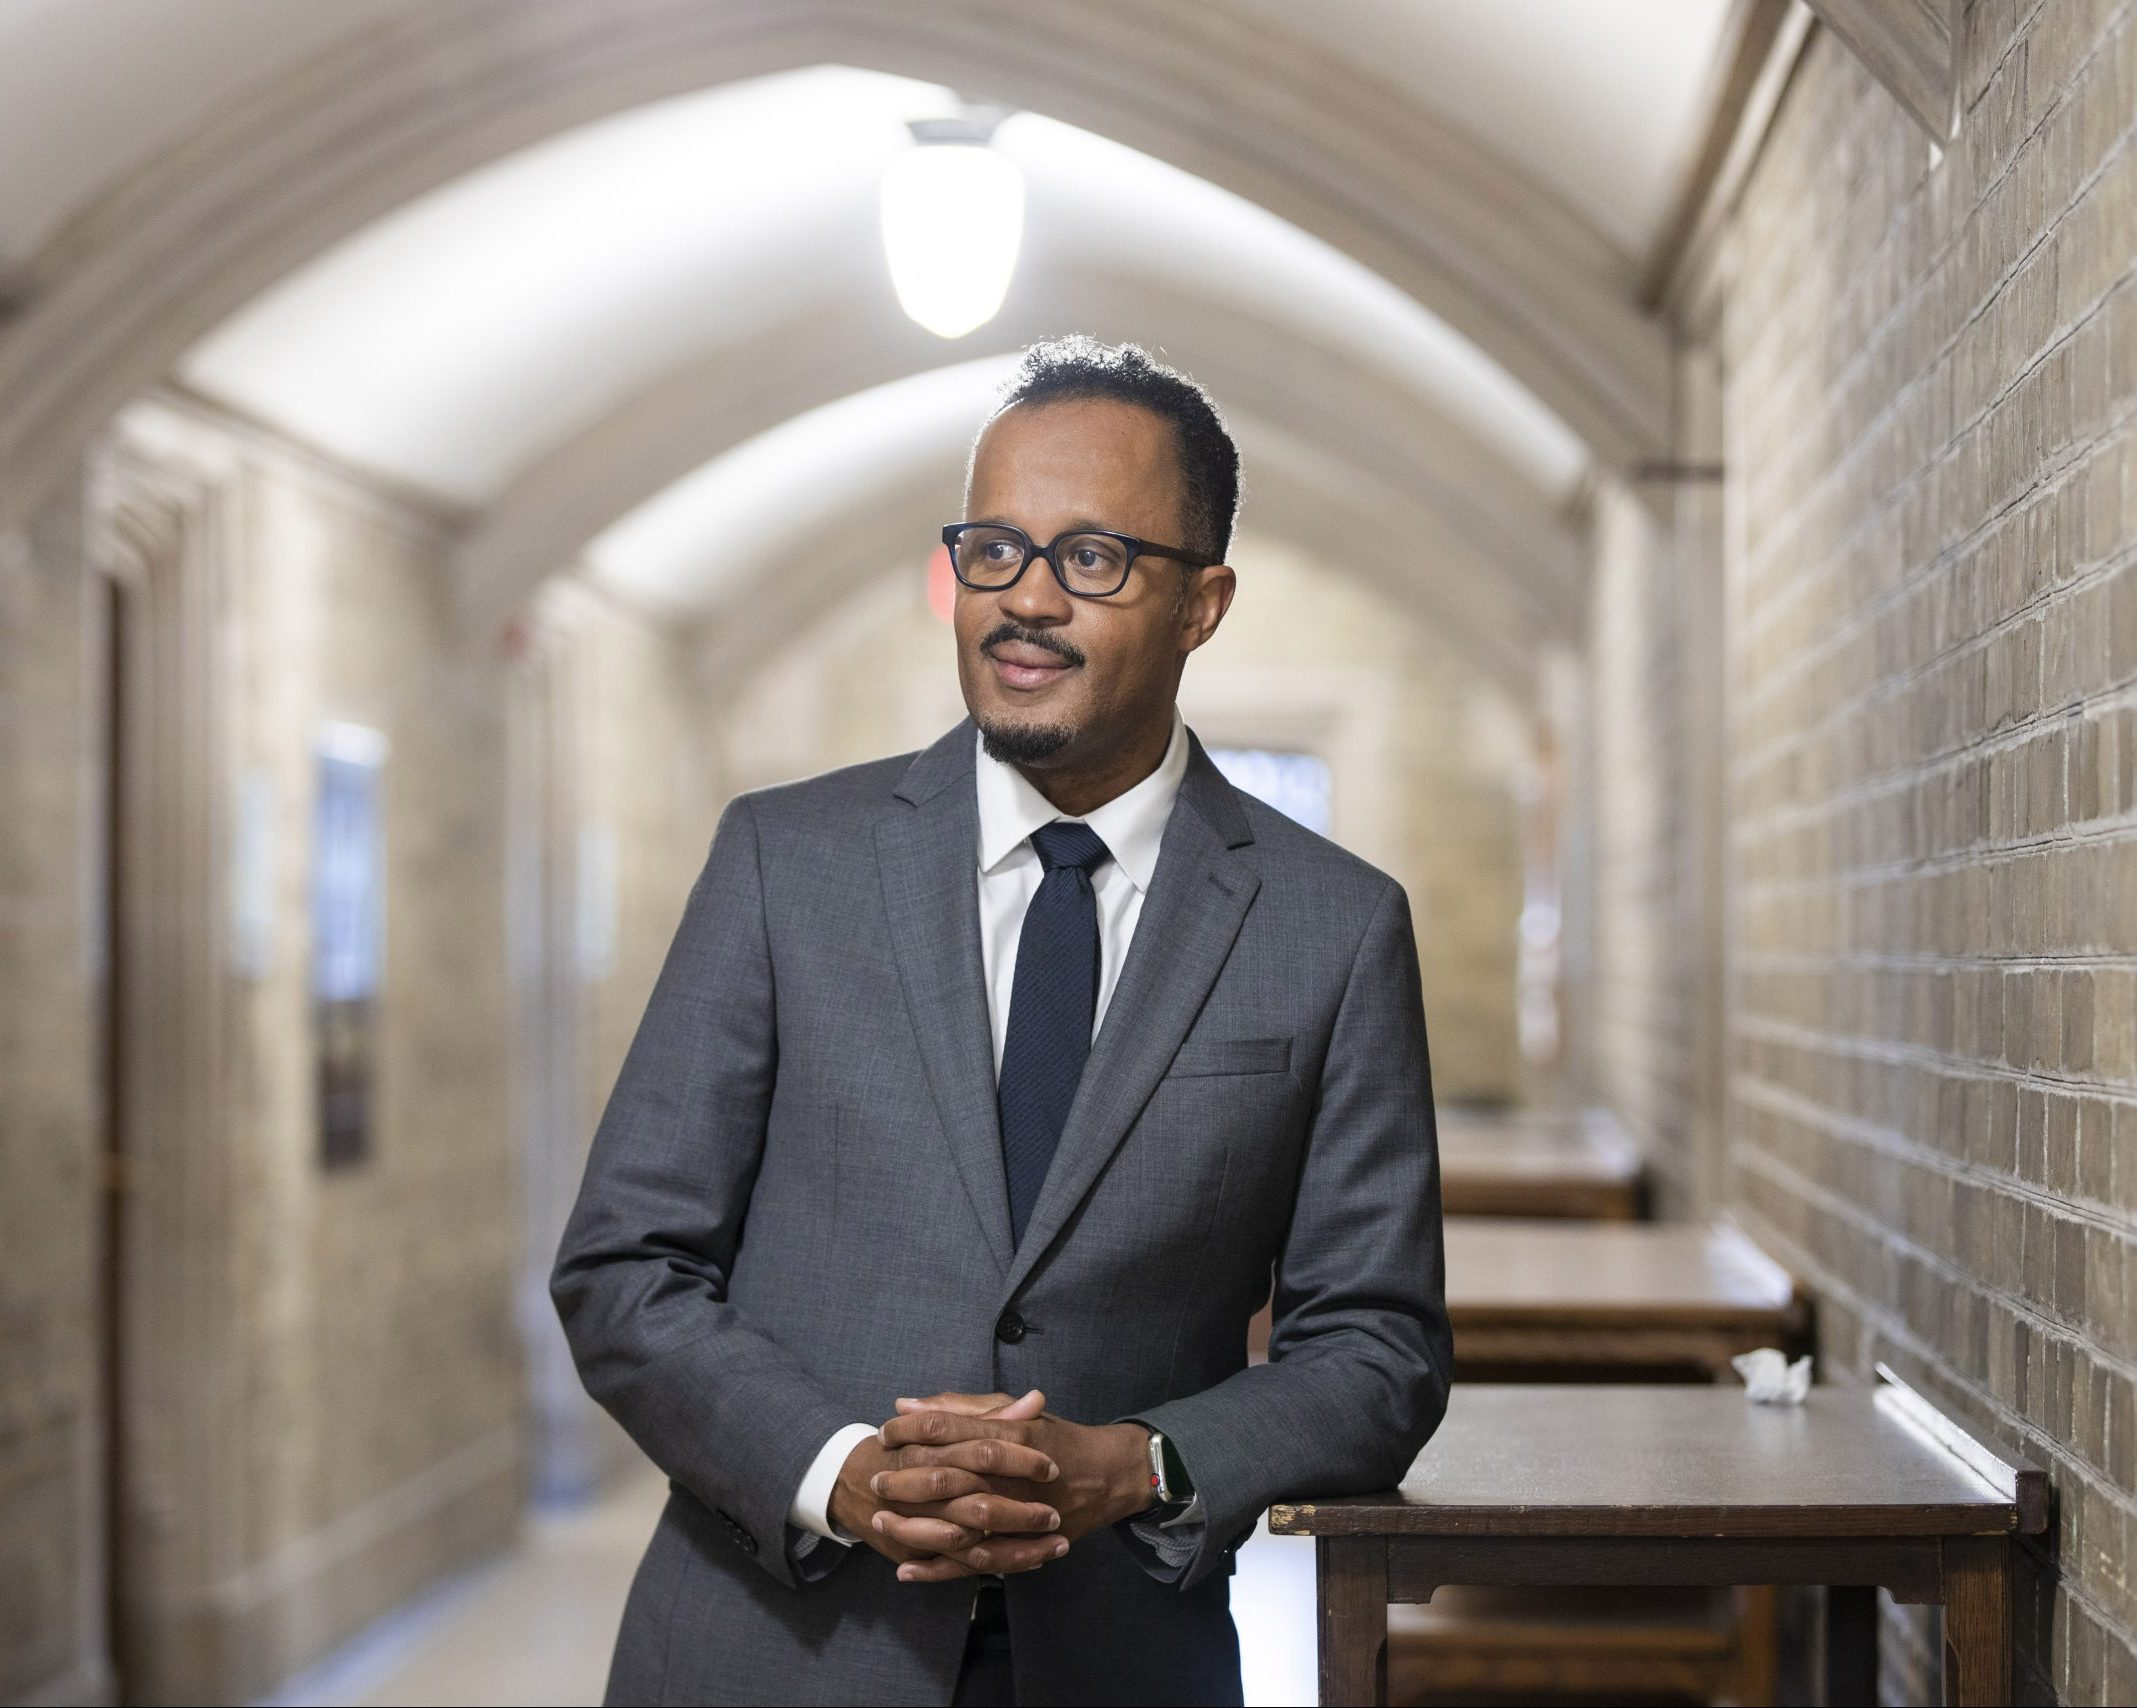 Structural violence: U of T's Dexter Voisin on systemic racism, trauma and the Black community